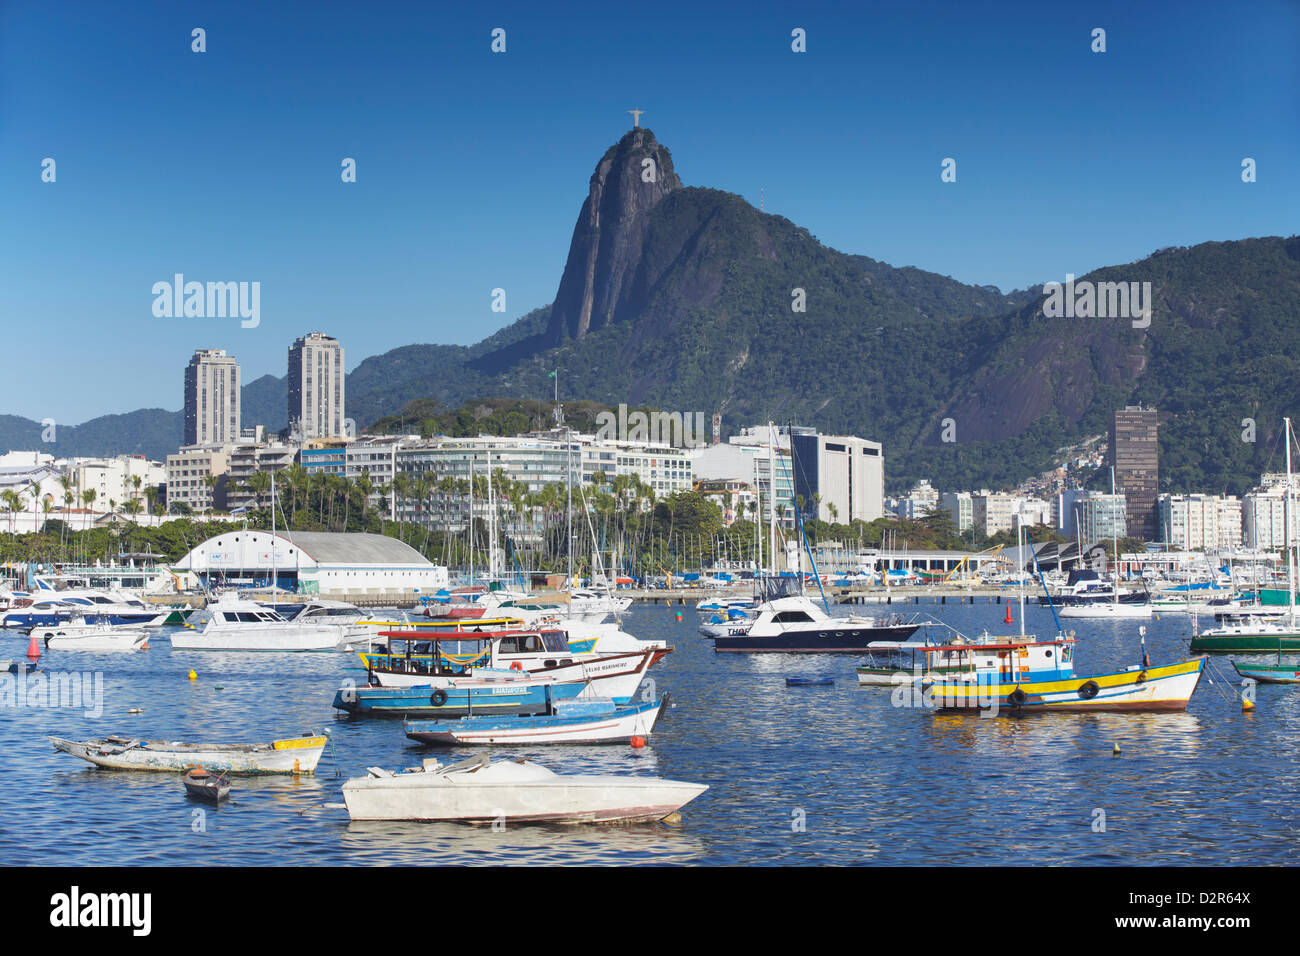 Boats moored in harbour with Christ the Redeemer statue in background, Urca, Rio de Janeiro, Brazil, South America - Stock Image